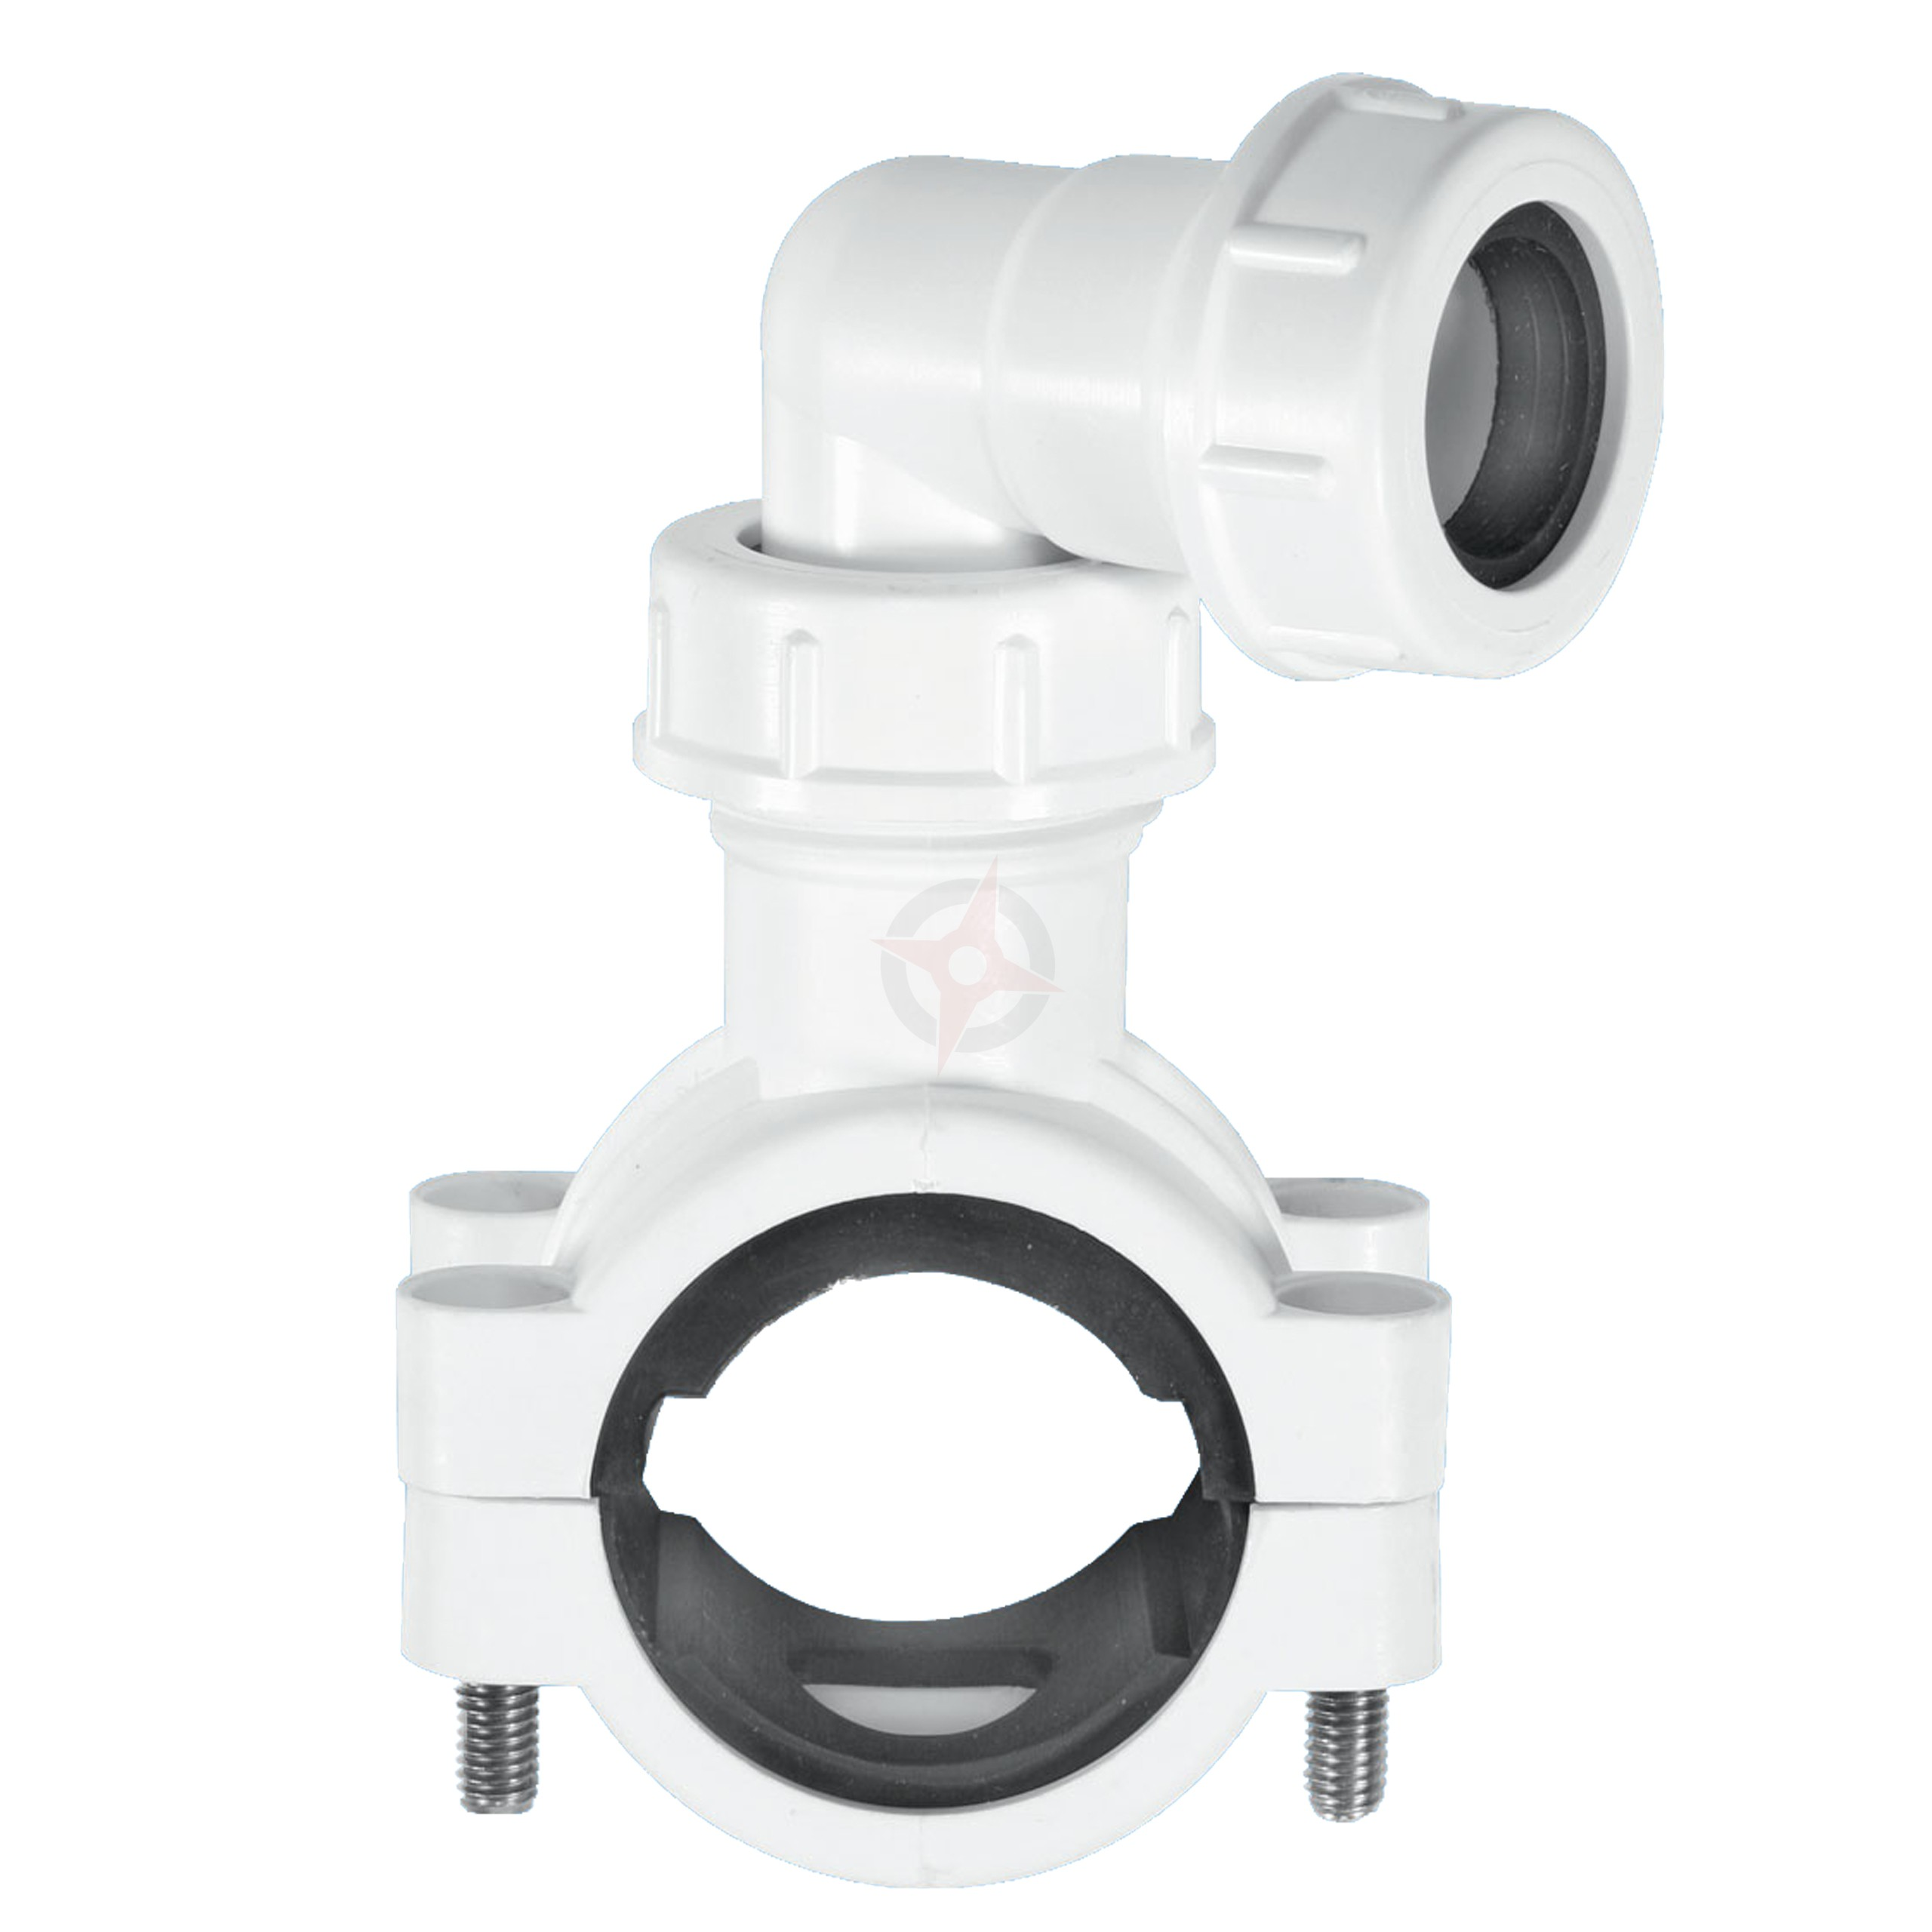 McAlpine White Pipe Clamp For 32mm and 40mm Pipe